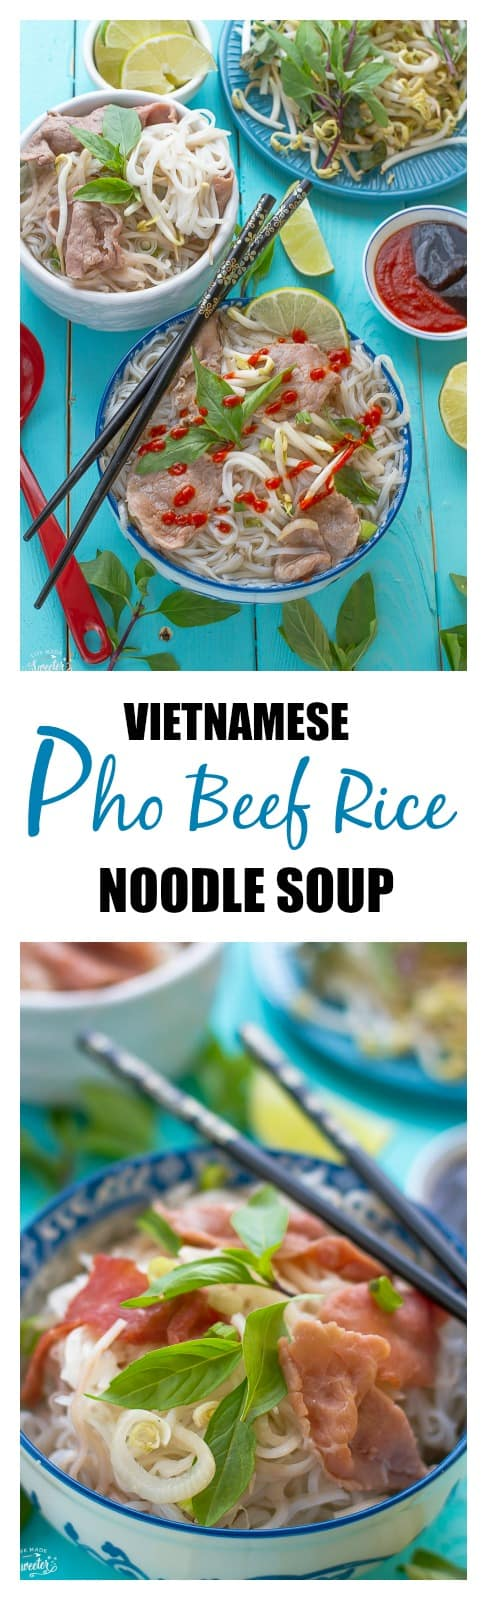 Vietnamese pho beef Rice noodle soup from the slow cooker